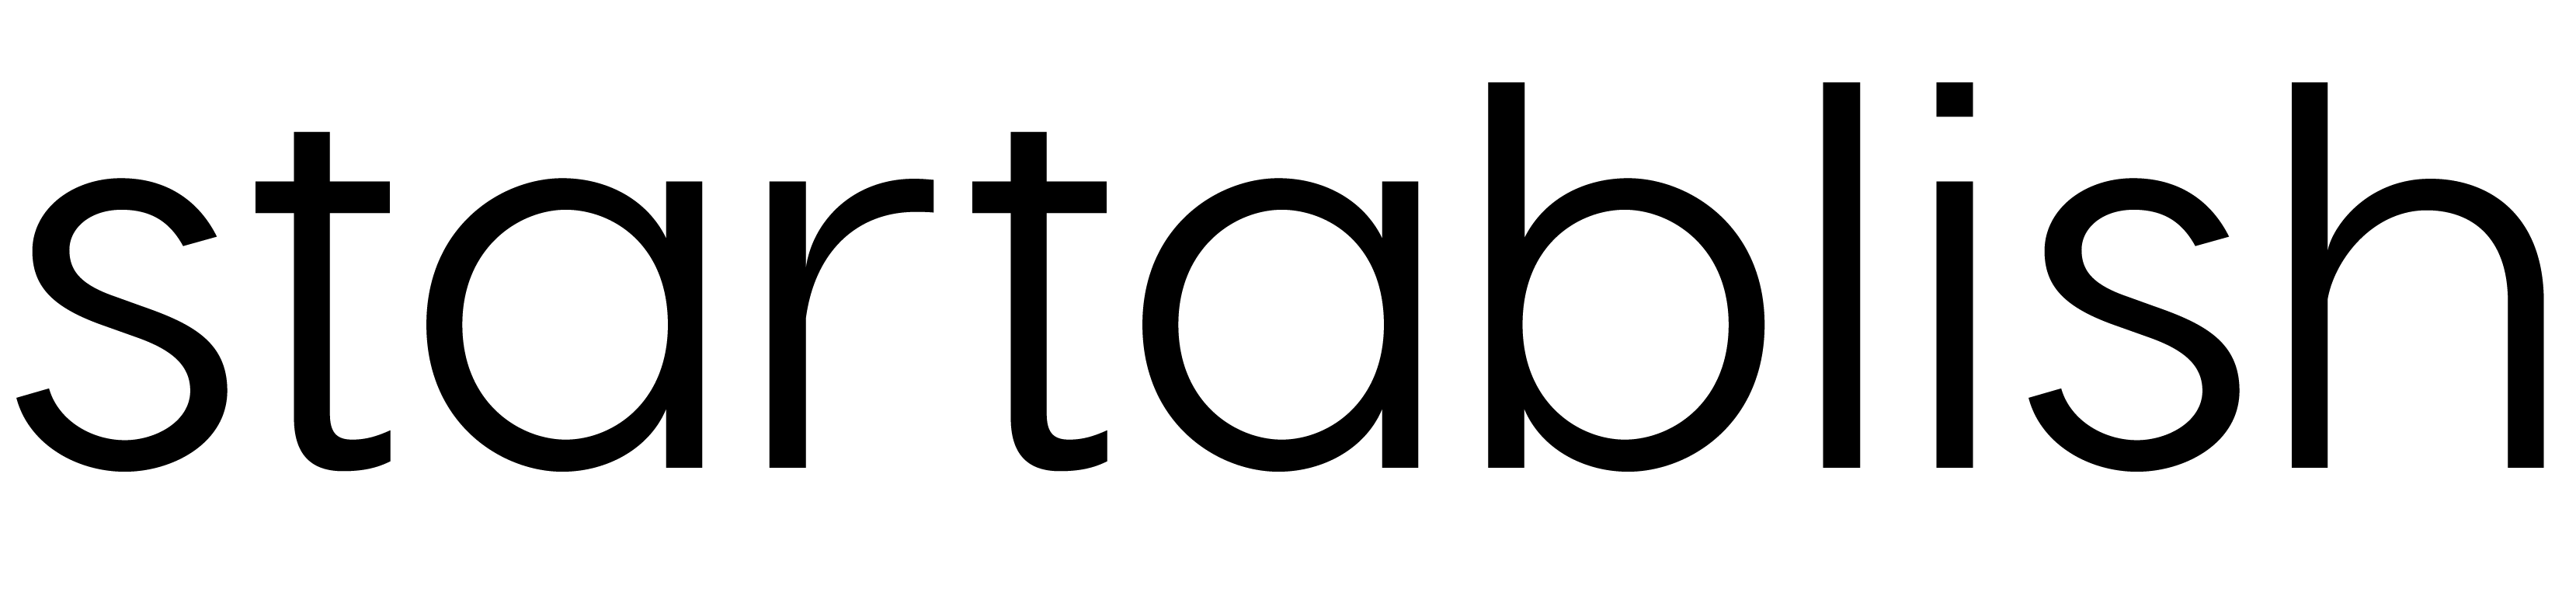 startablish logo